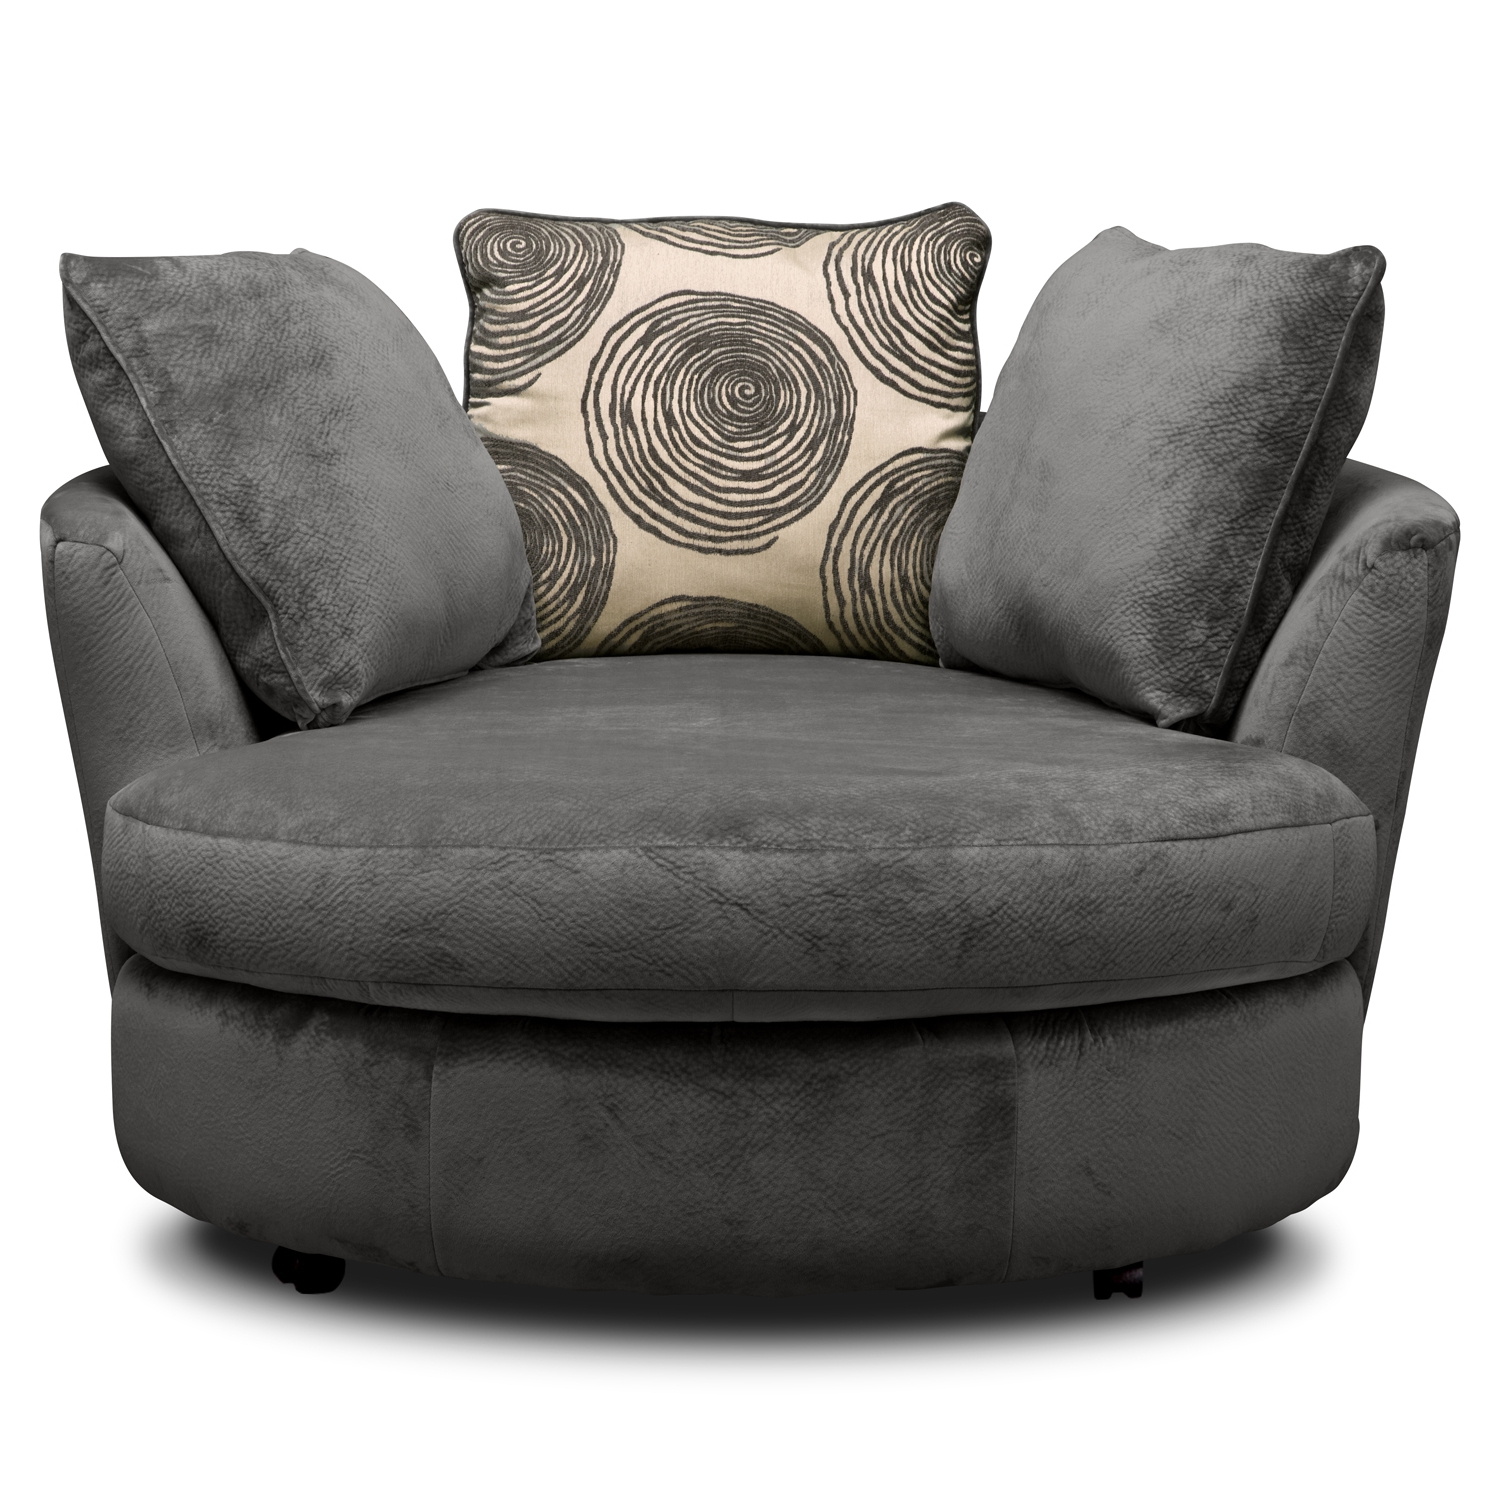 Popular Amazing Circle Sofa Chair 68 For Modern Sofa Ideas With Circle Sofa Throughout Circle Sofa Chairs (Gallery 2 of 20)